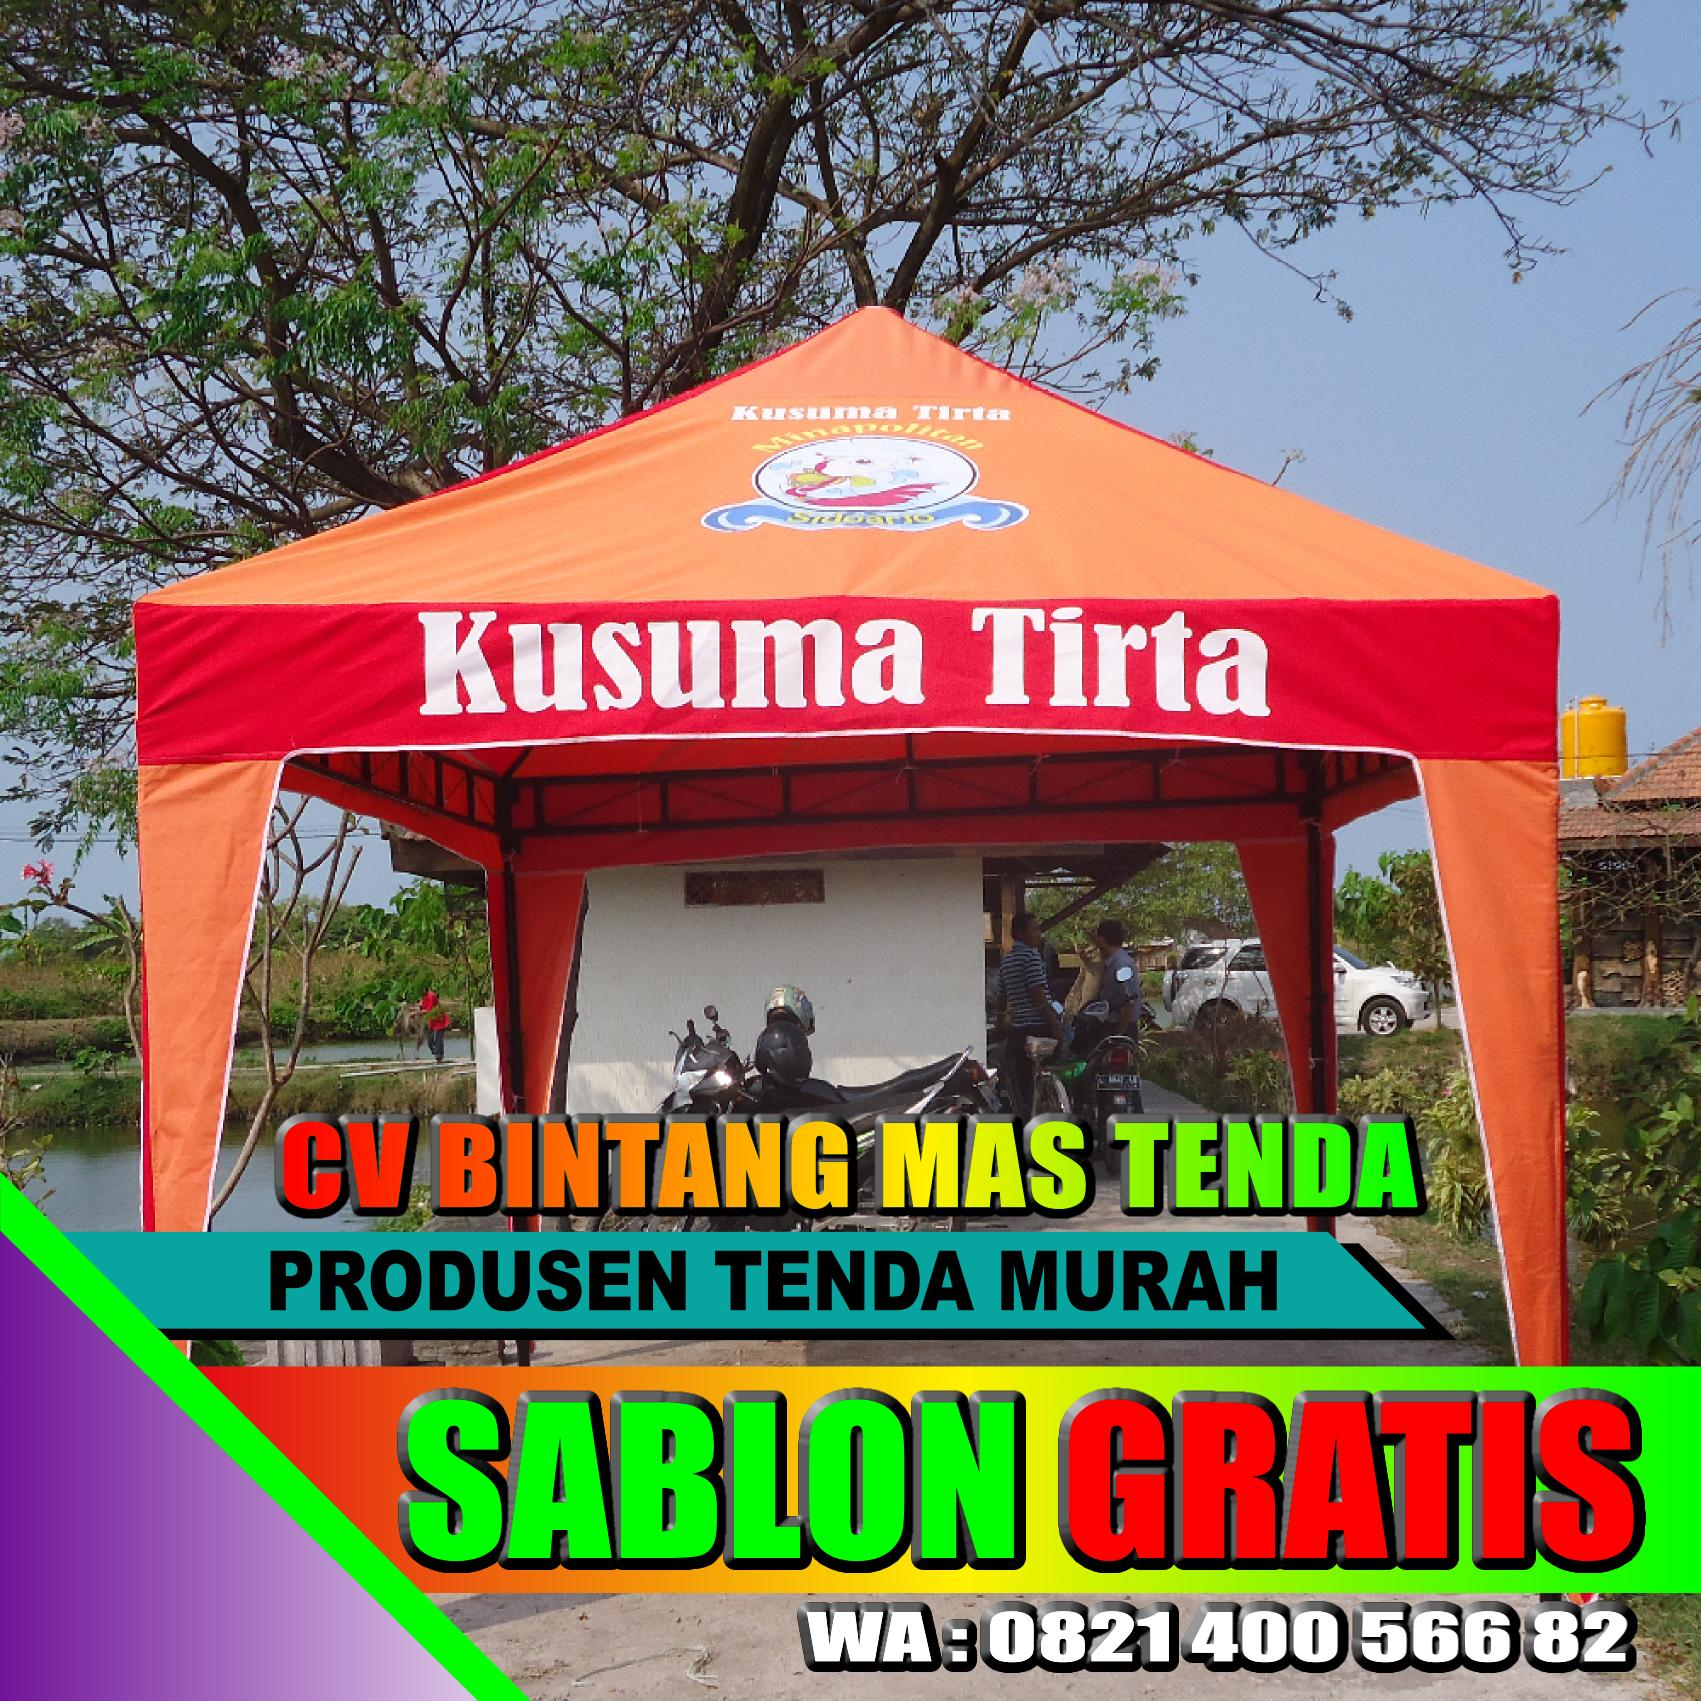 Tenda Cafe, Tenda Display, Gazebo